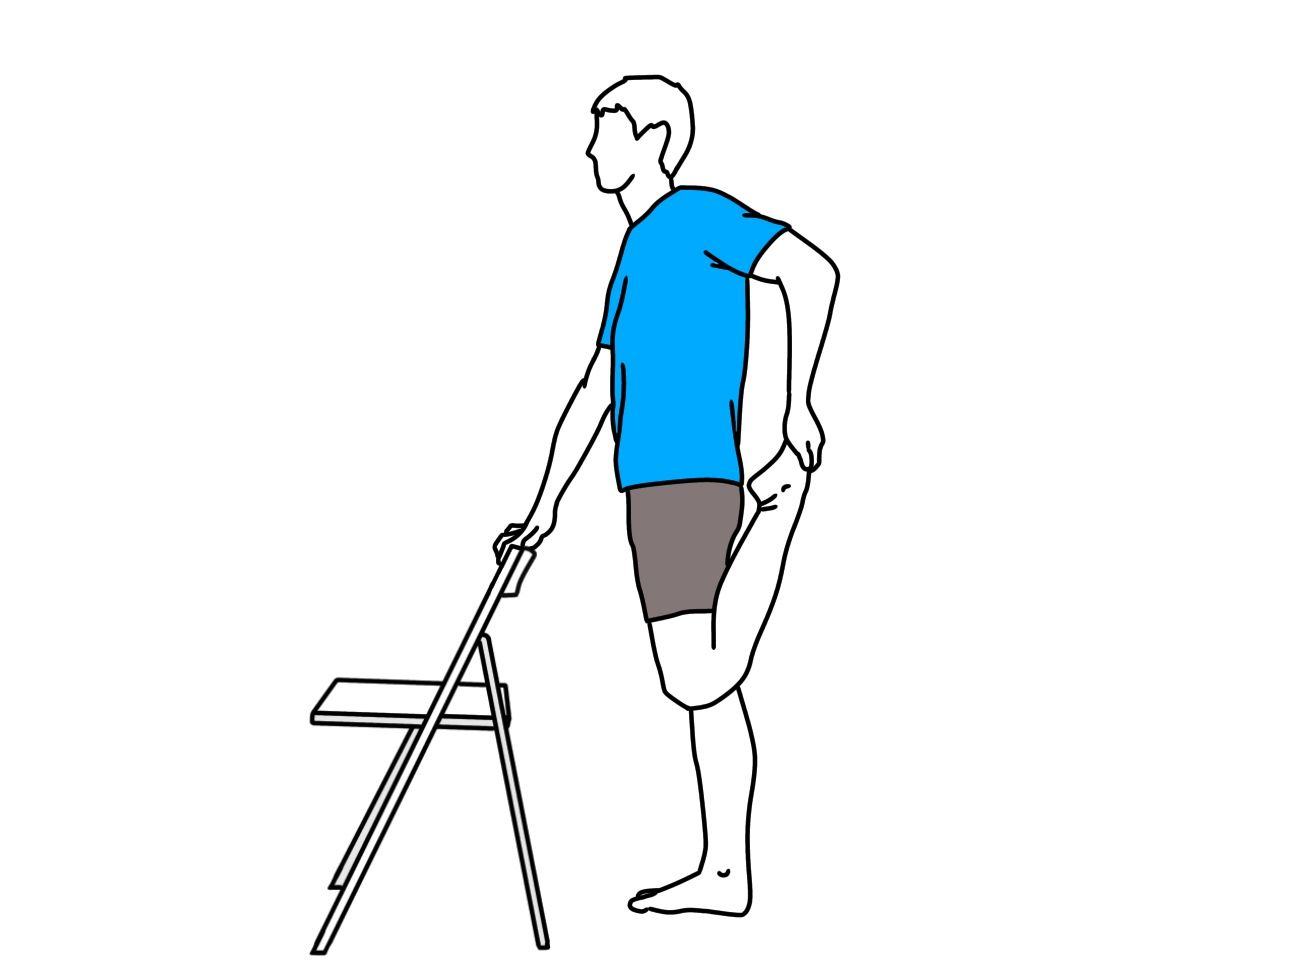 Quadriceps Stretch With Chair Illustration 2 Stretch Illustration In 2020 Illustration Stretches Chair